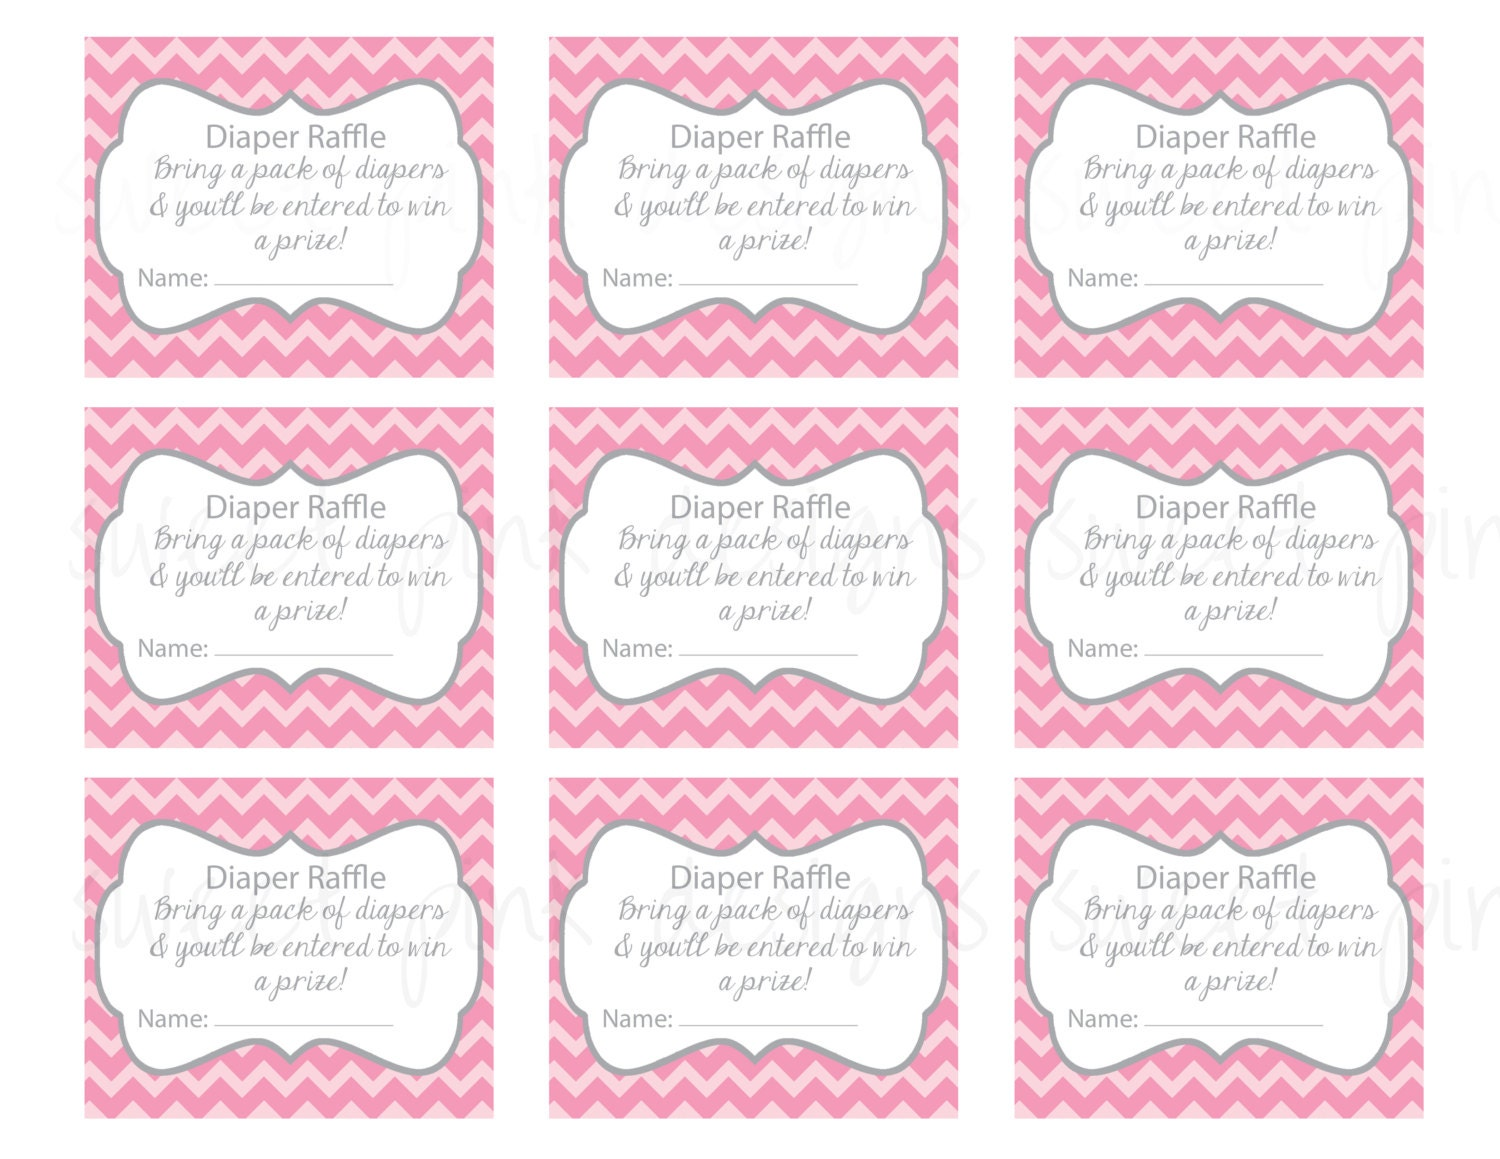 photo regarding Free Printable Diaper Raffle Ticket Template Download identified as Diaper Raffle Ticket- Gray and Crimson Chevron